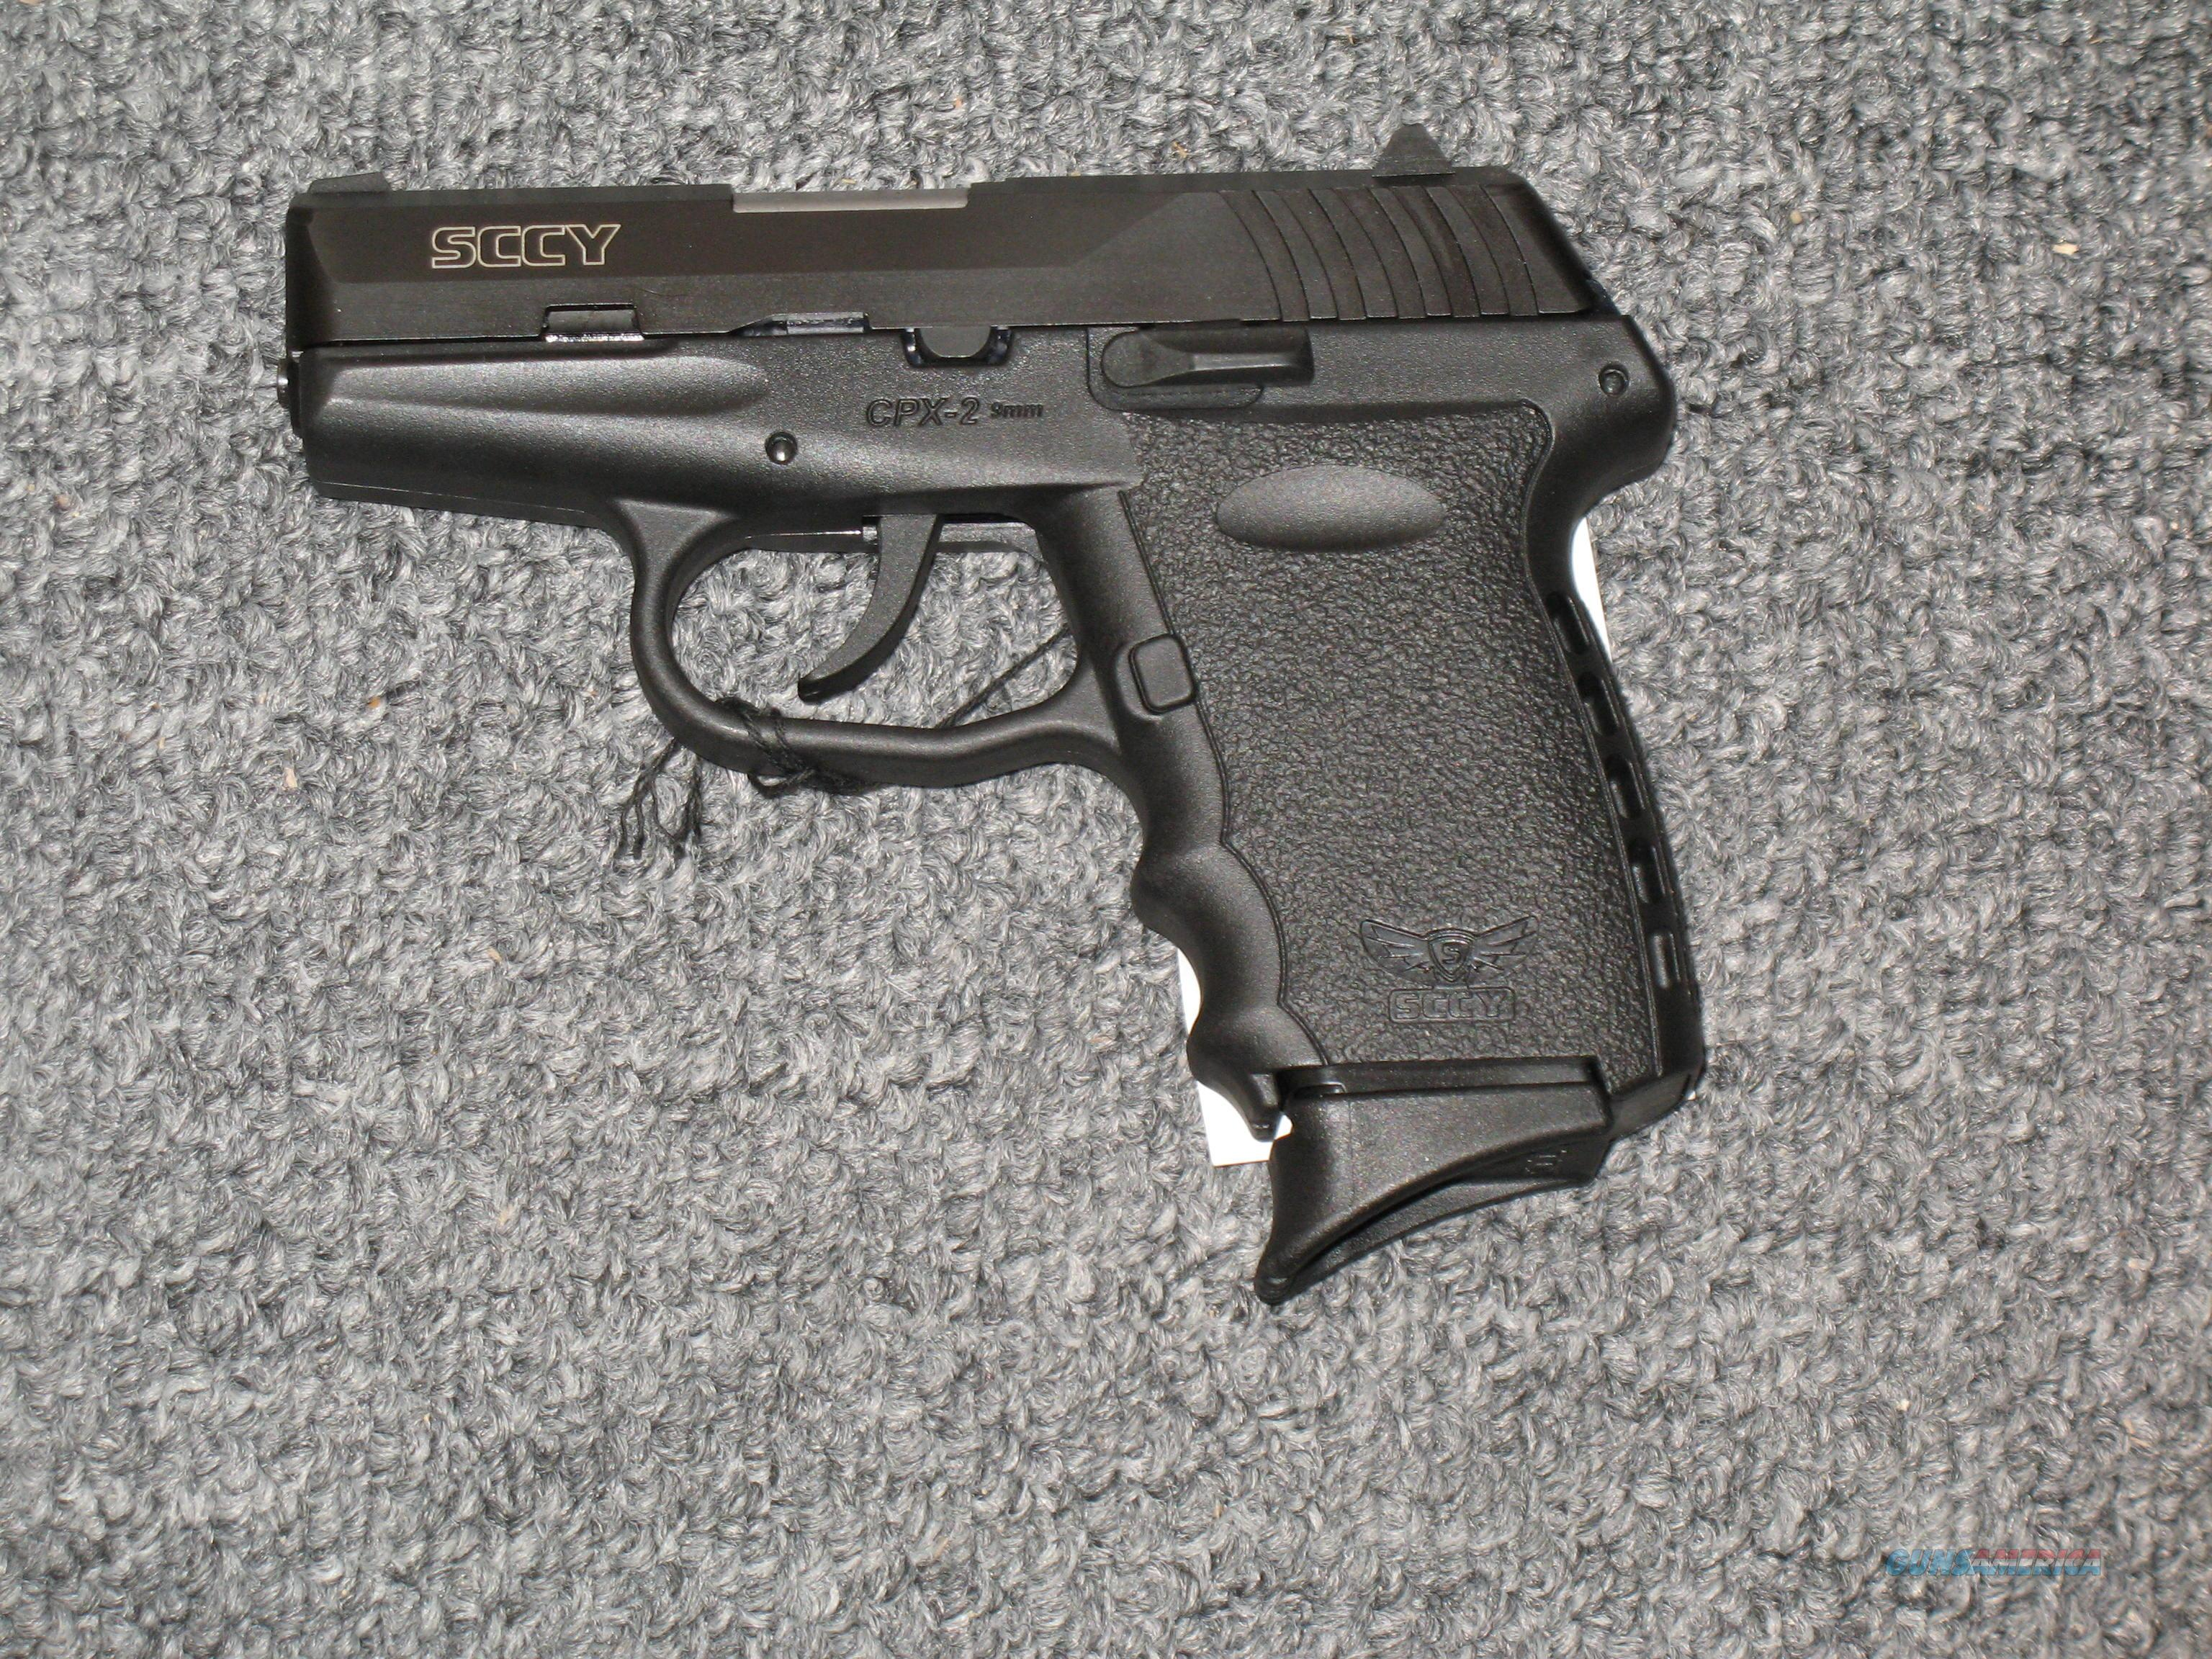 SCCY CPX-2 no safety (all black)  Guns > Pistols > S Misc Pistols